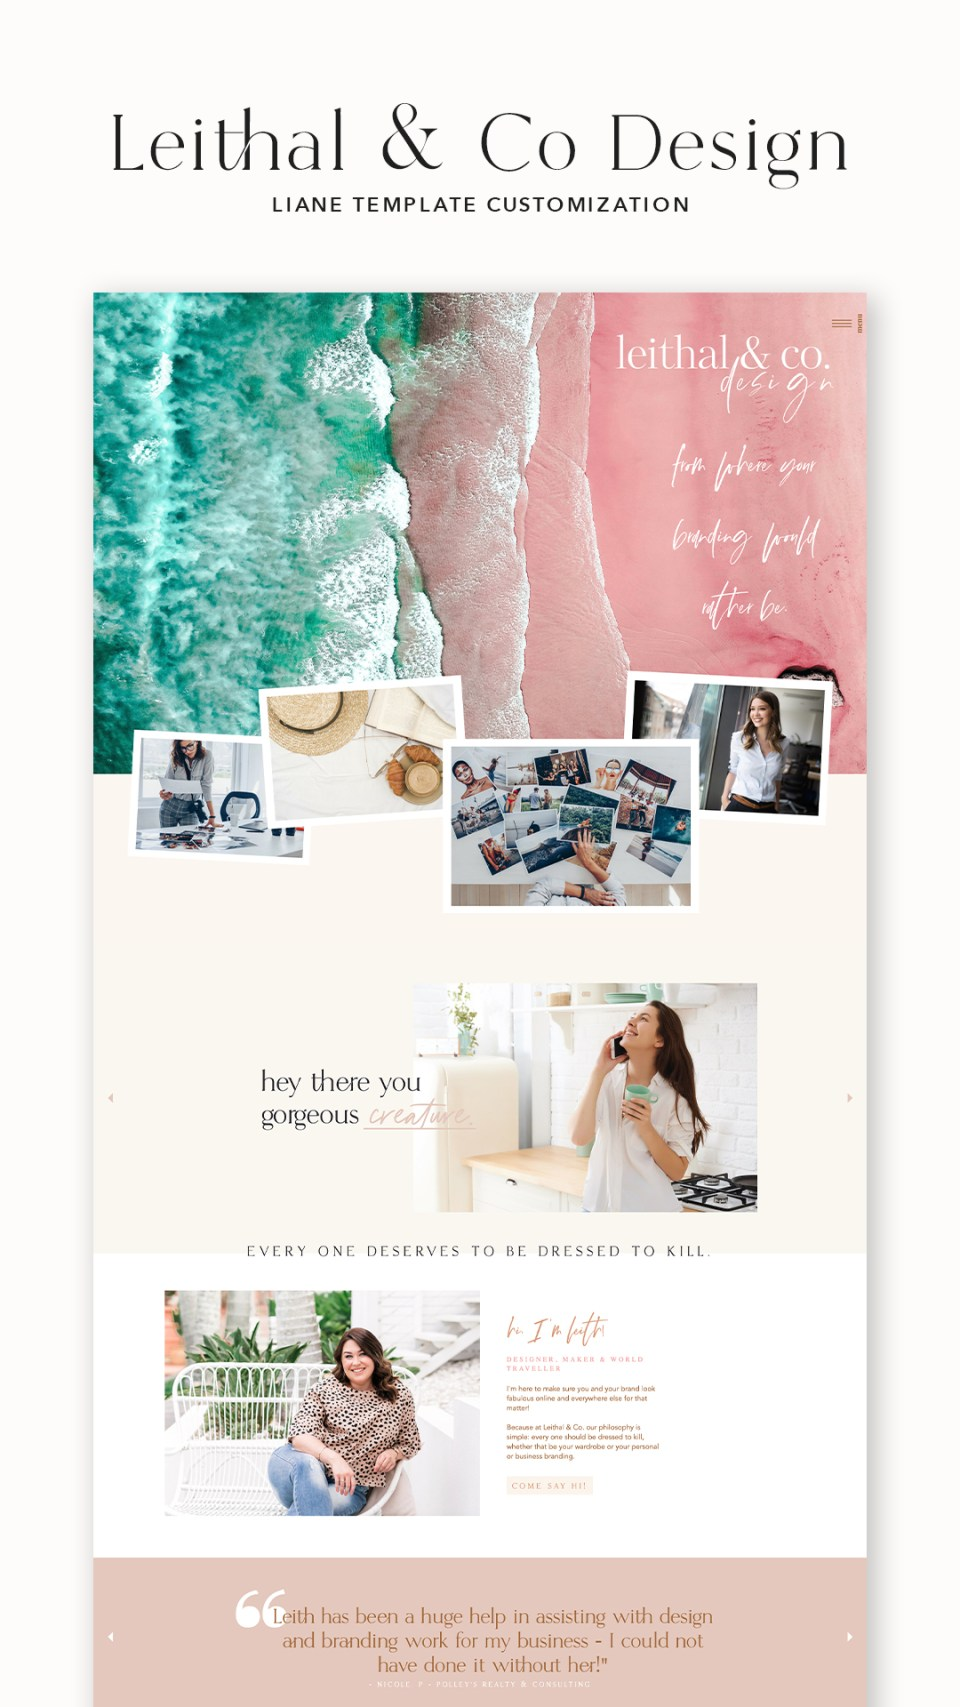 Check out Leithal & Co Design's website customized with the Liane template from EM Shop.